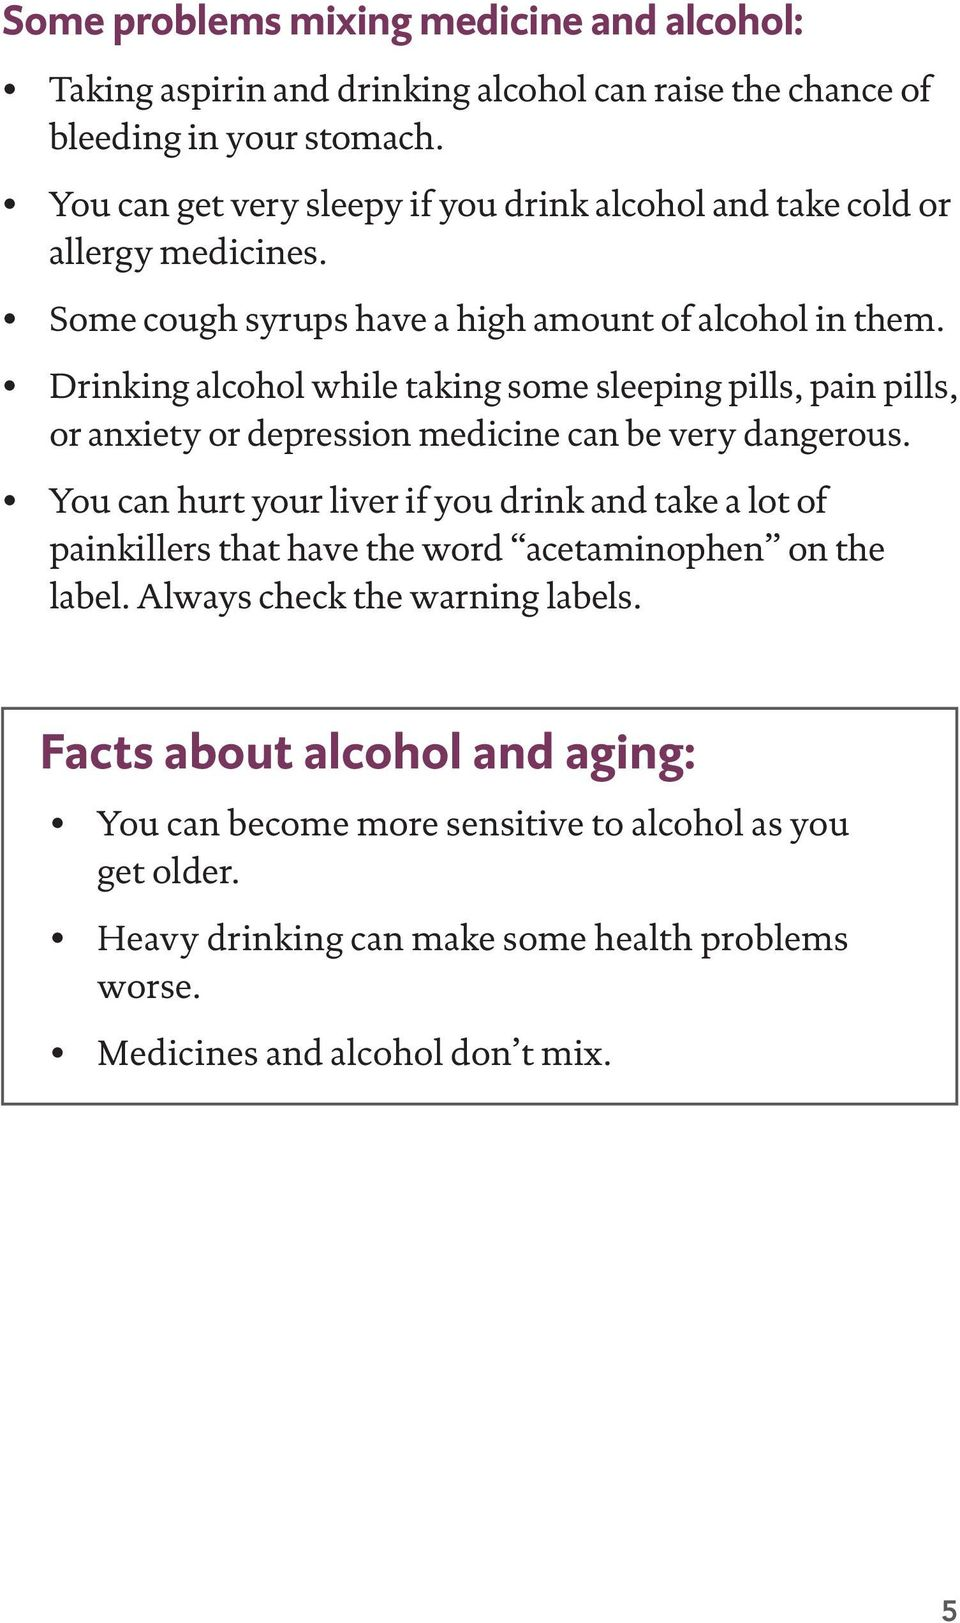 Drinking alcohol while taking some sleeping pills, pain pills, or anxiety or depression medicine can be very dangerous.